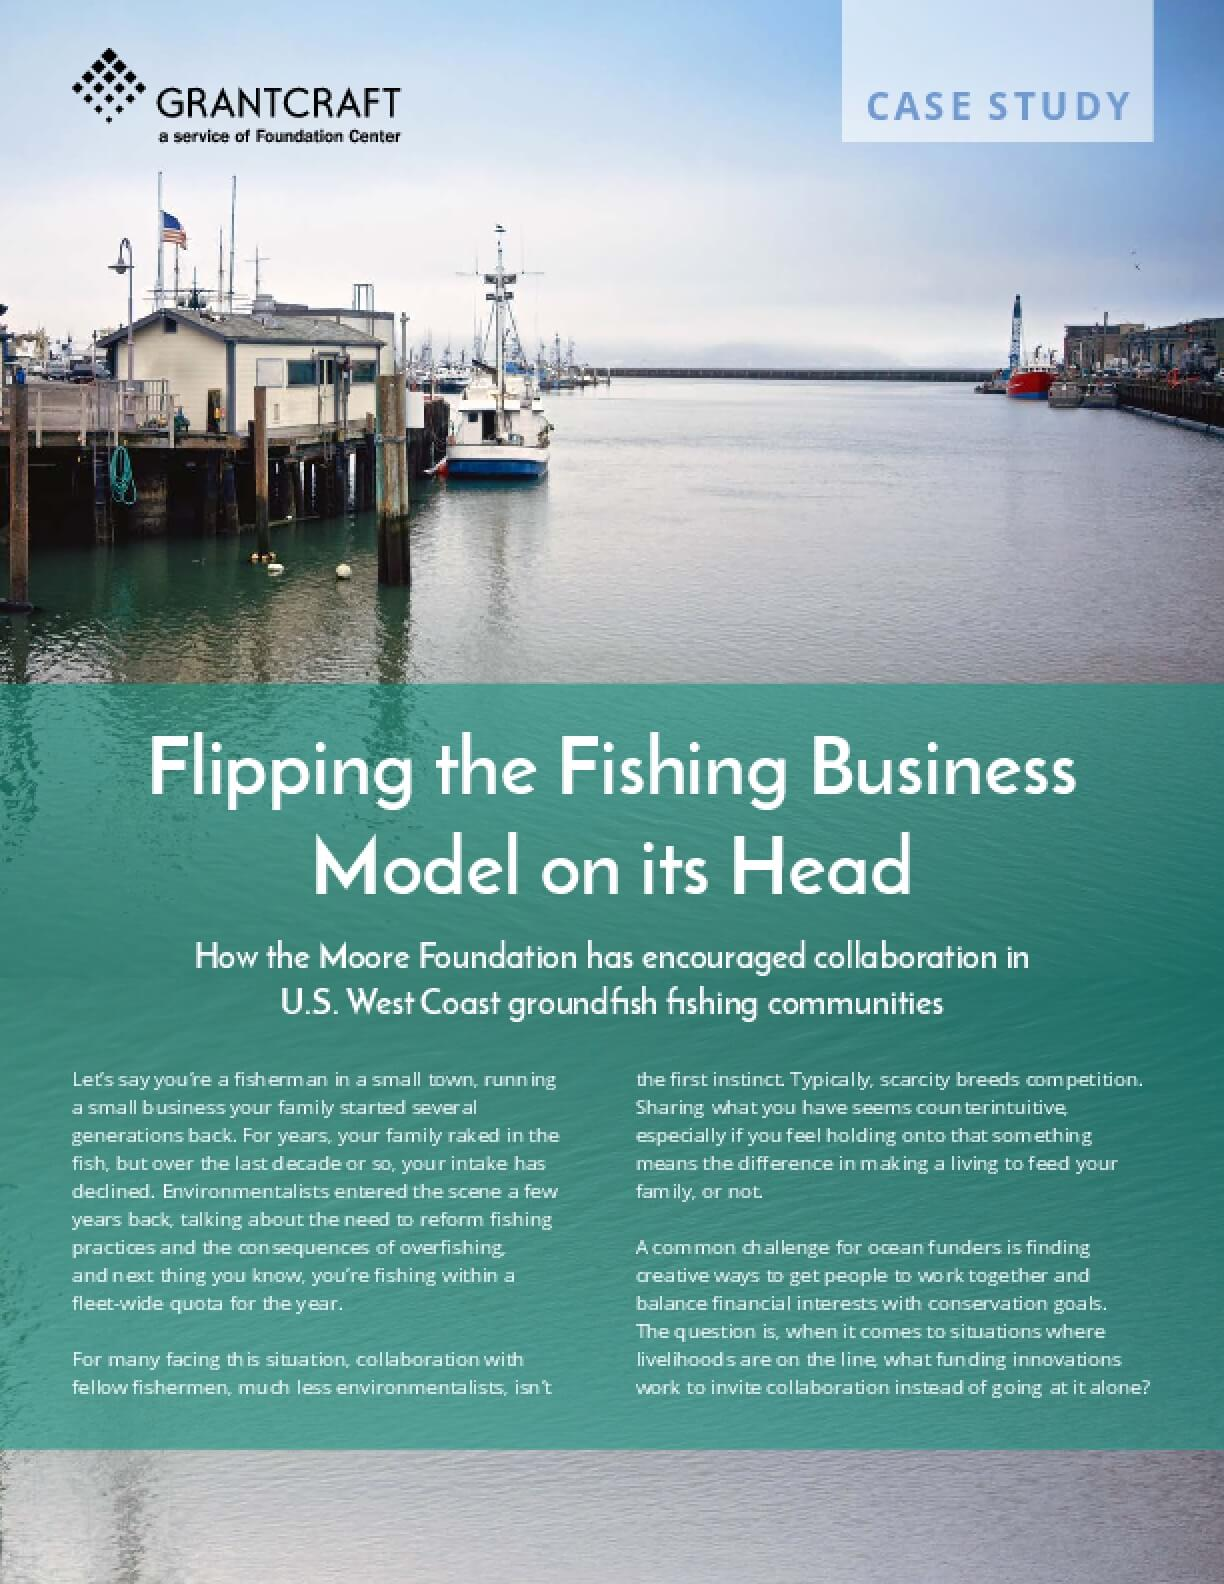 Flipping the Fishing Business Model on its Head